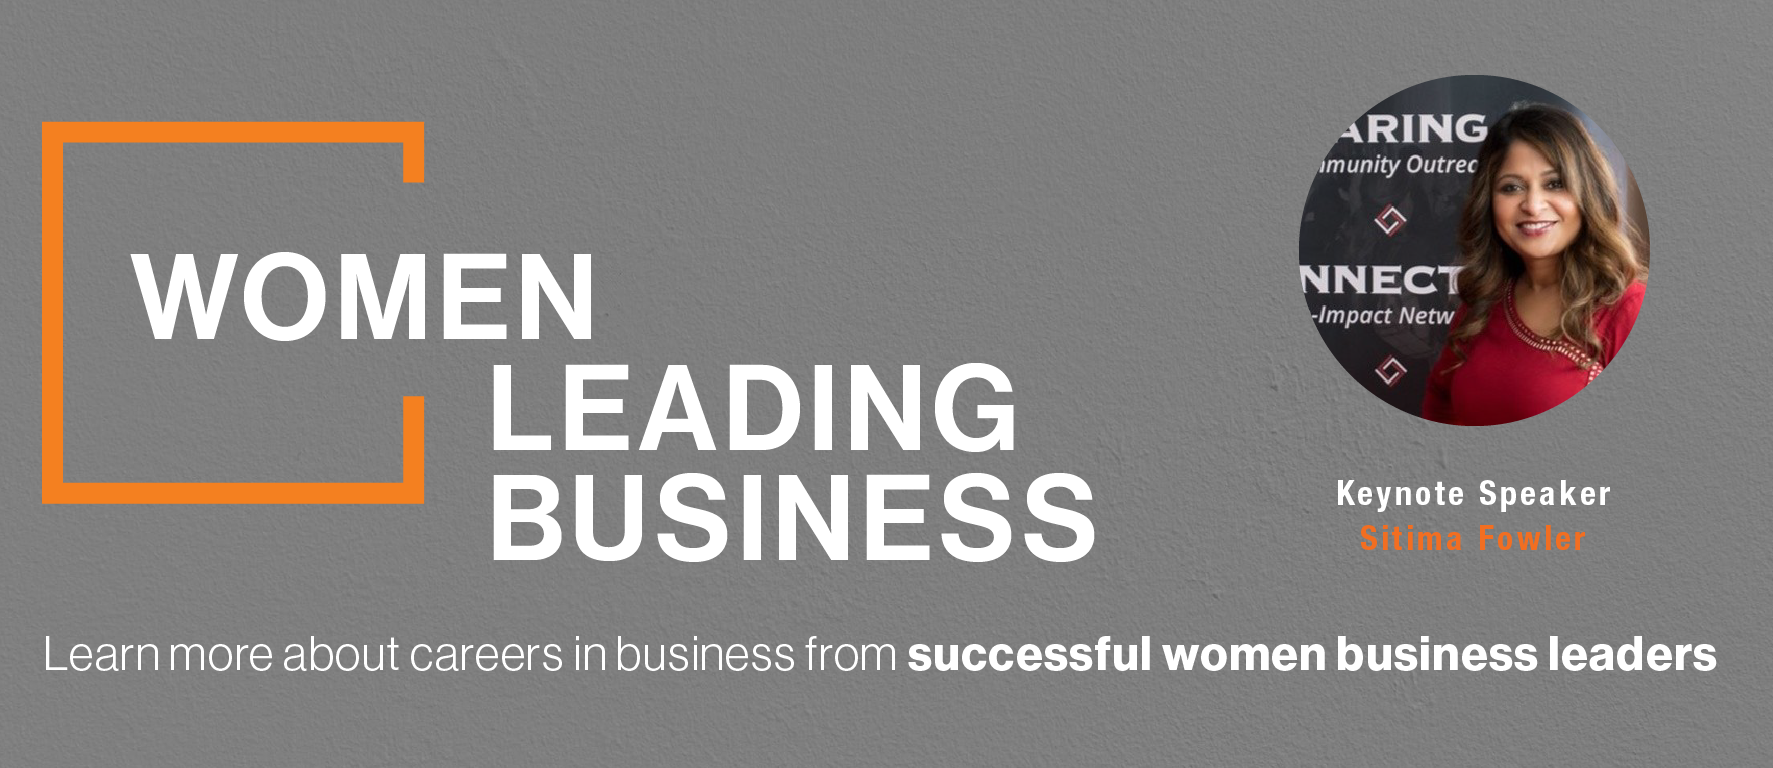 Women Leading Business 2019